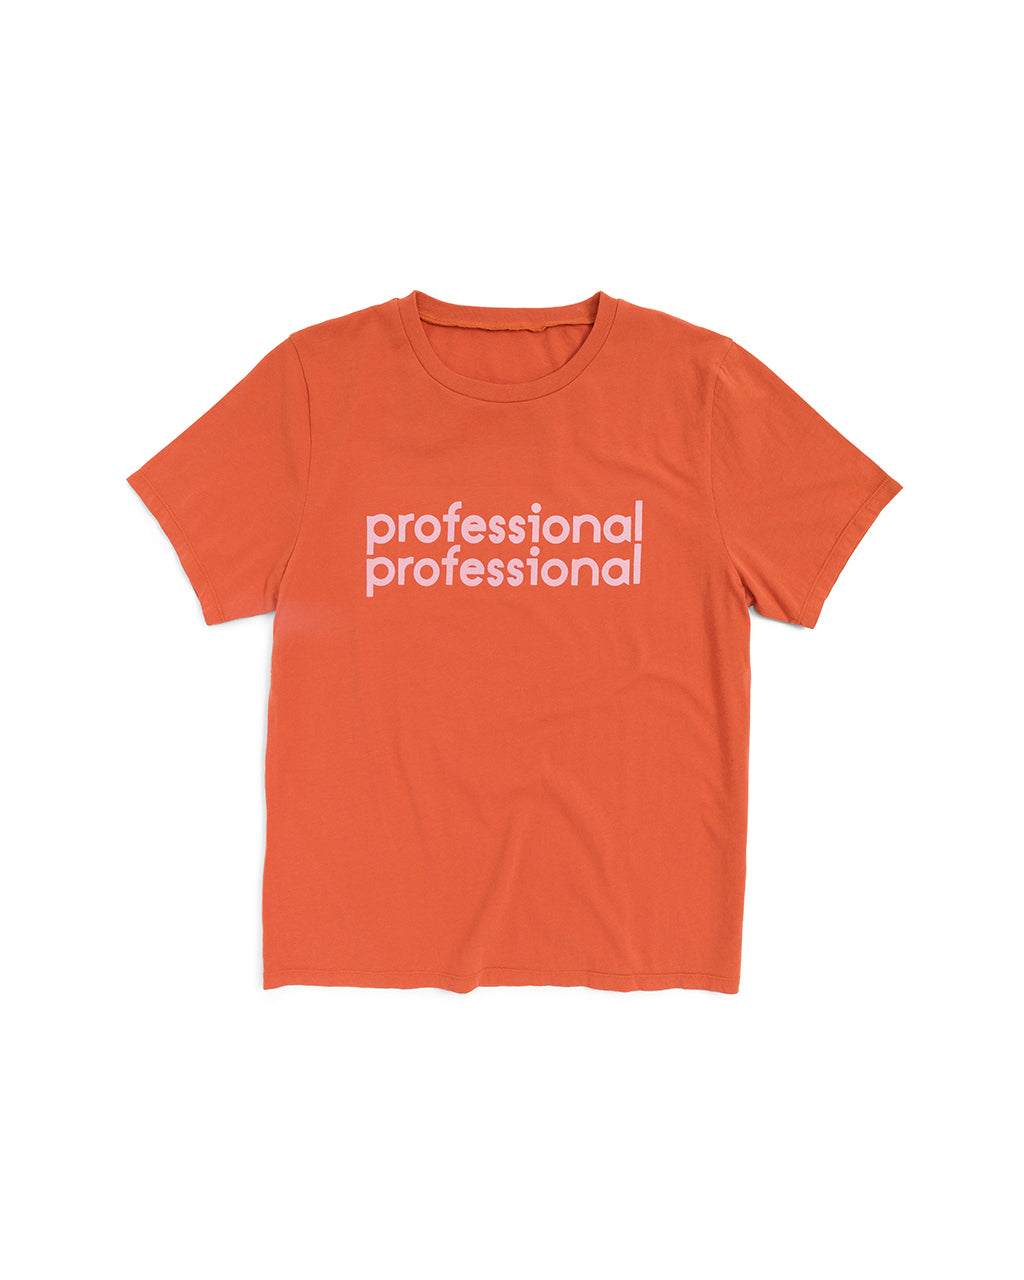 professional professional tee